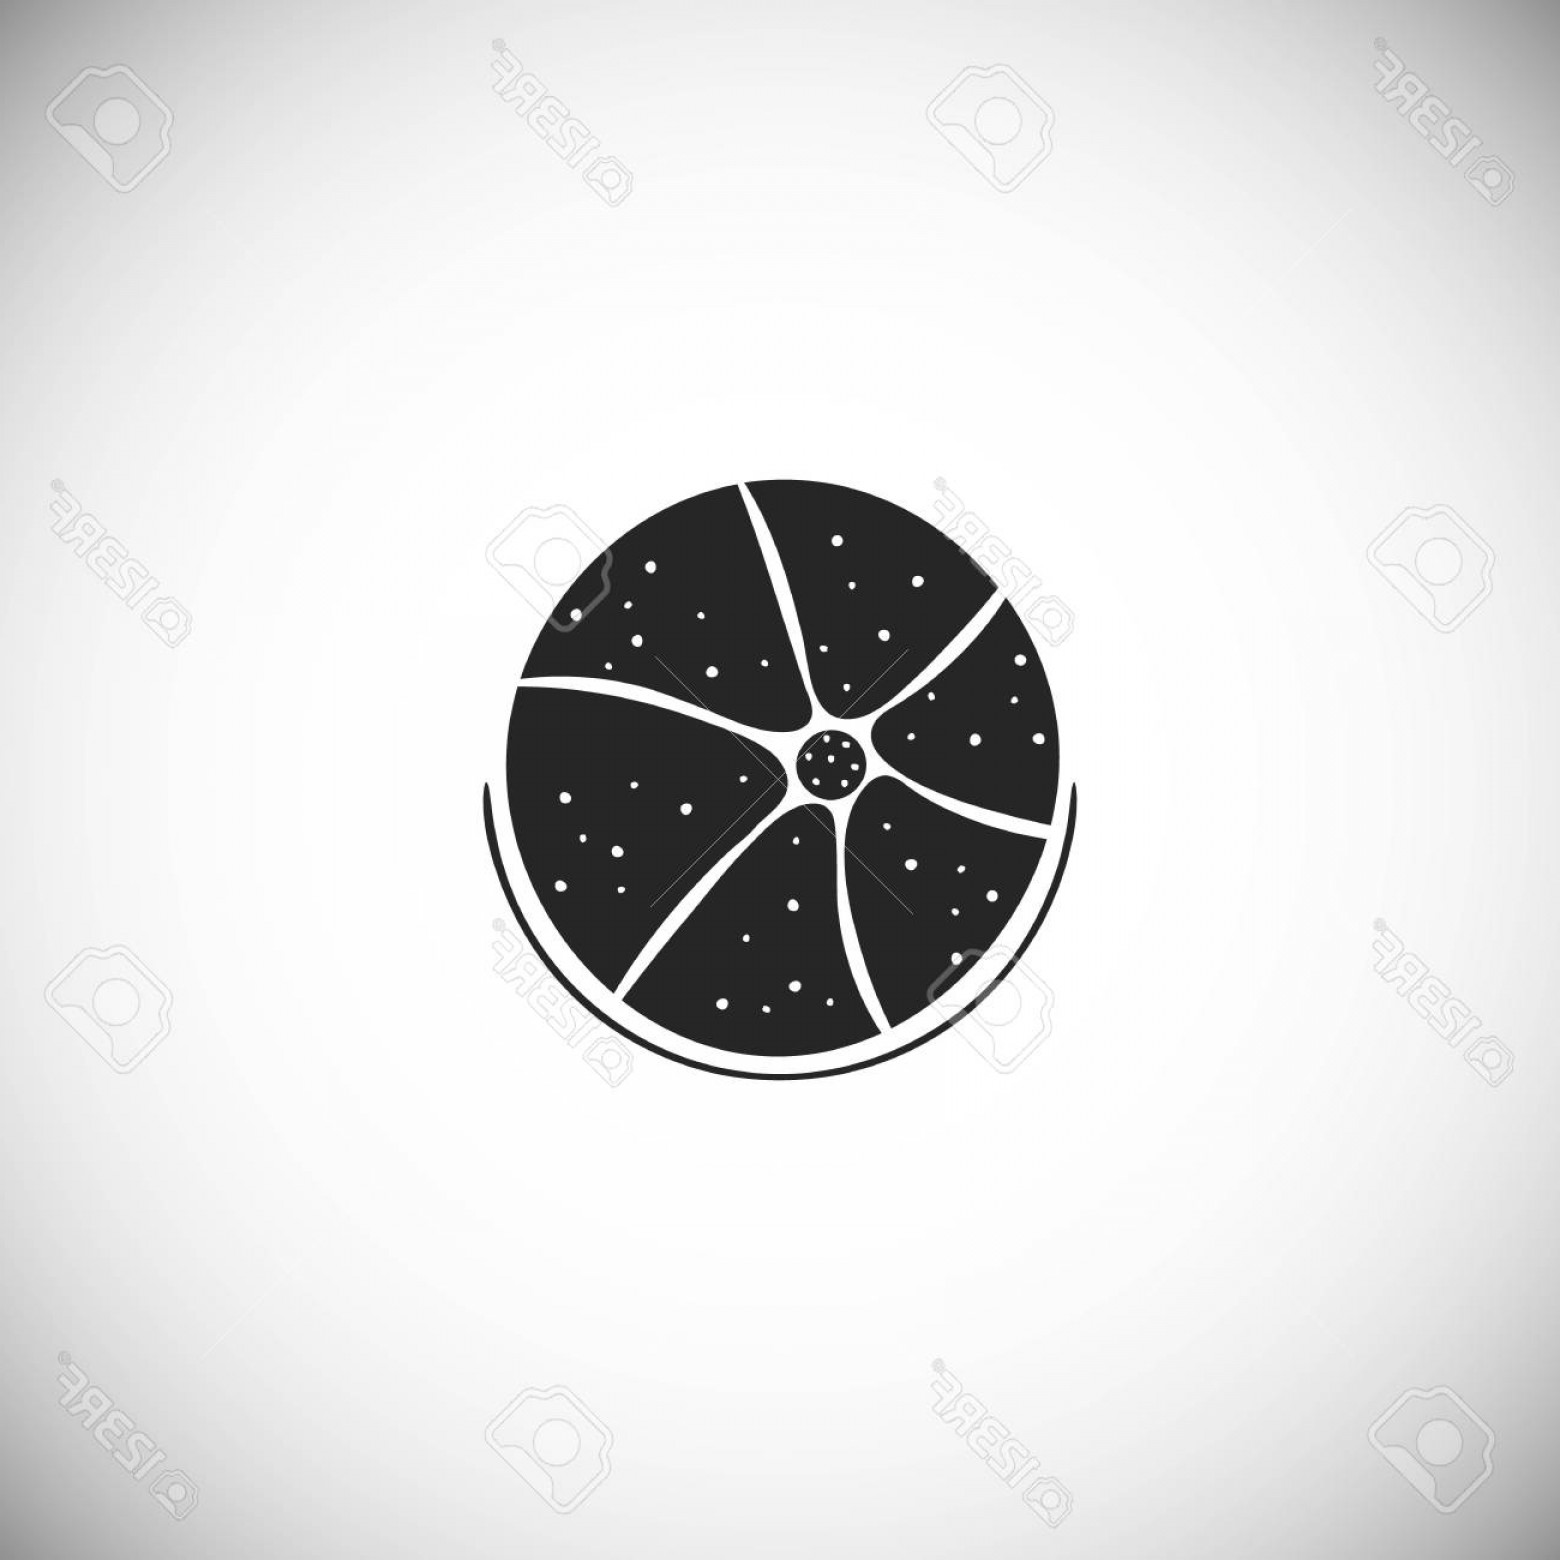 Sand Dollar Silhouette Vector: Photostock Vector Silhouette Icon Of Beach Ball Hand Drawn Style Element For The Summer Card Vector